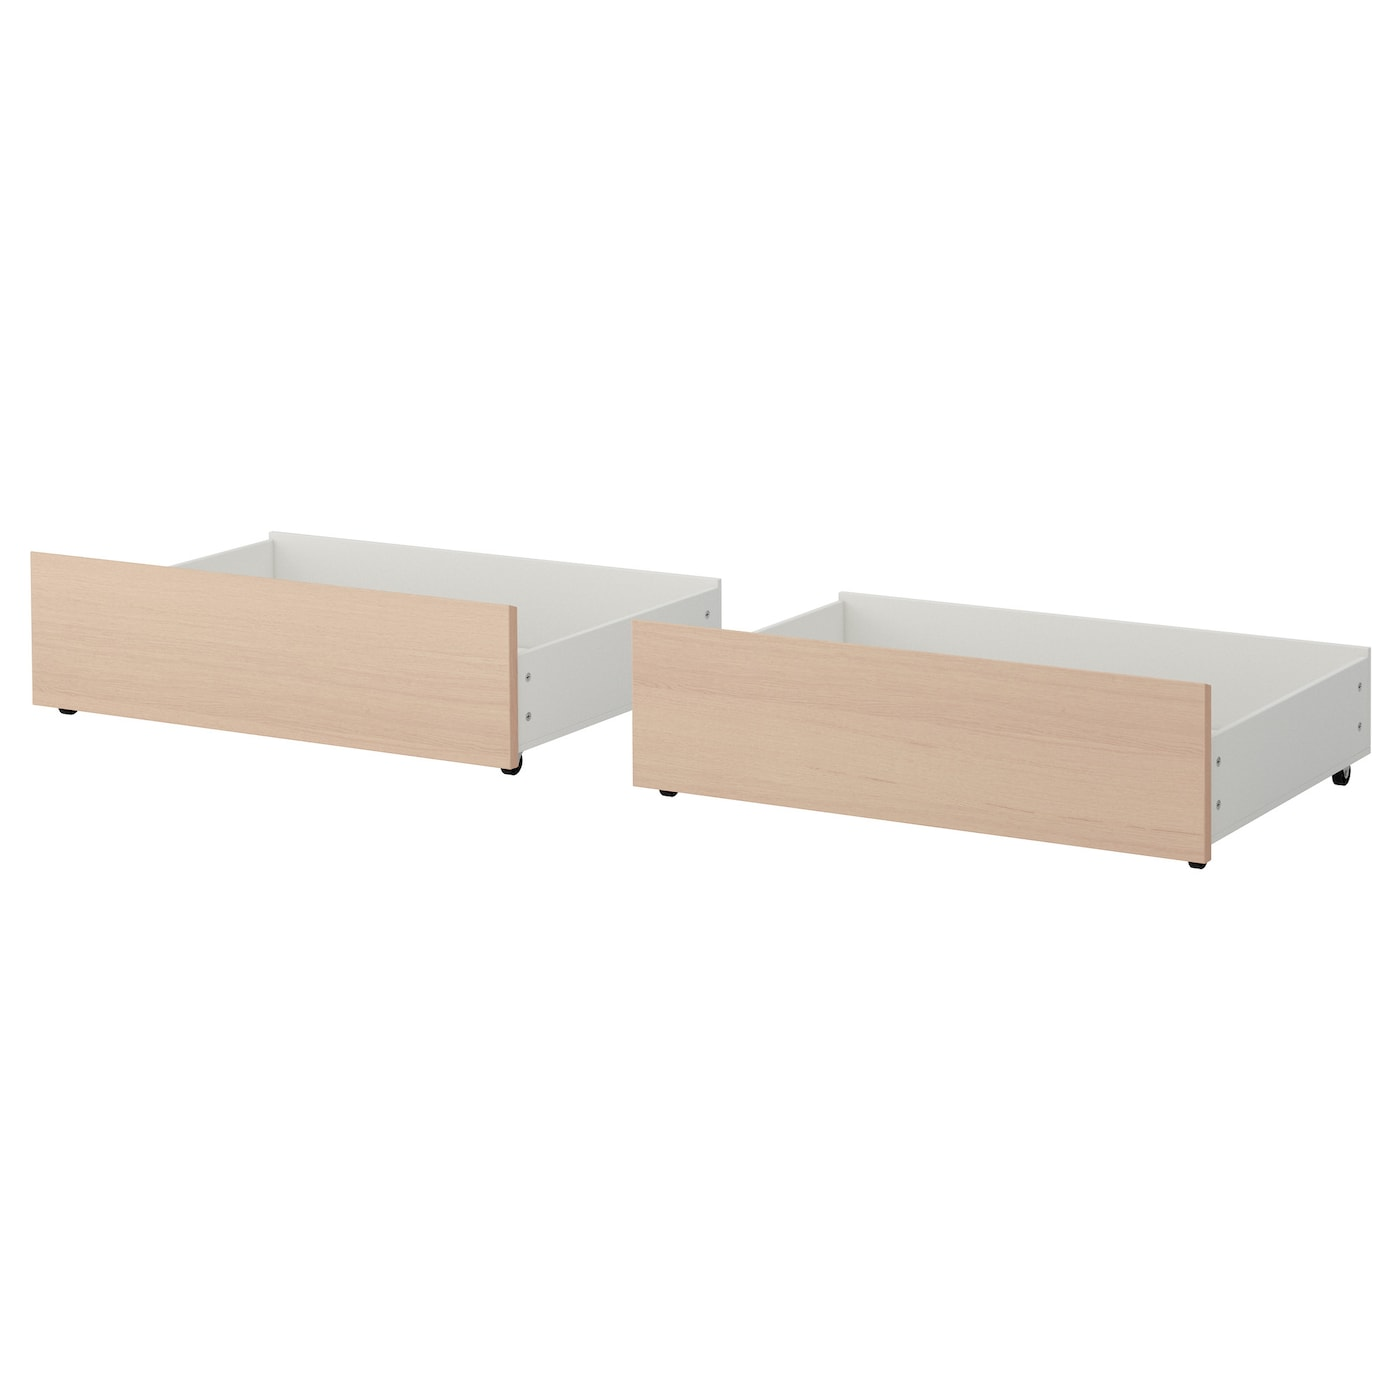 malm bed storage box for high bed frame white stained oak veneer single double ikea. Black Bedroom Furniture Sets. Home Design Ideas